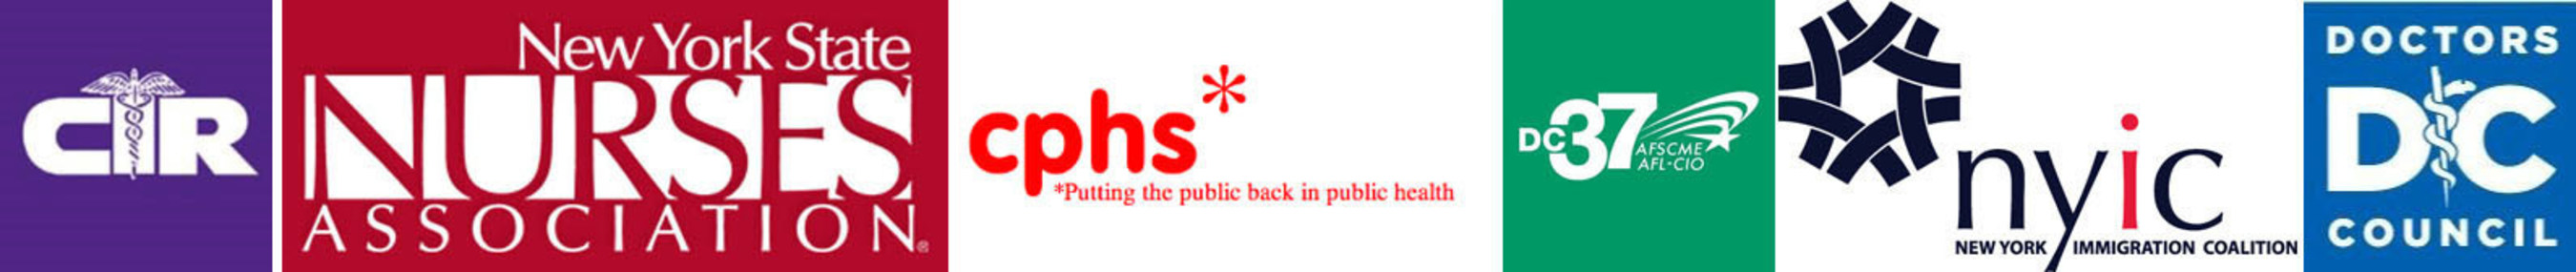 Commission on the Public's Health System (CPHS) - - Doctors Council SEIU - District Council 37 (DC 37) - New York Immigration Coalition - New York State Nurses Association (NYSNA) - Committee of Interns and Residents/SEIU